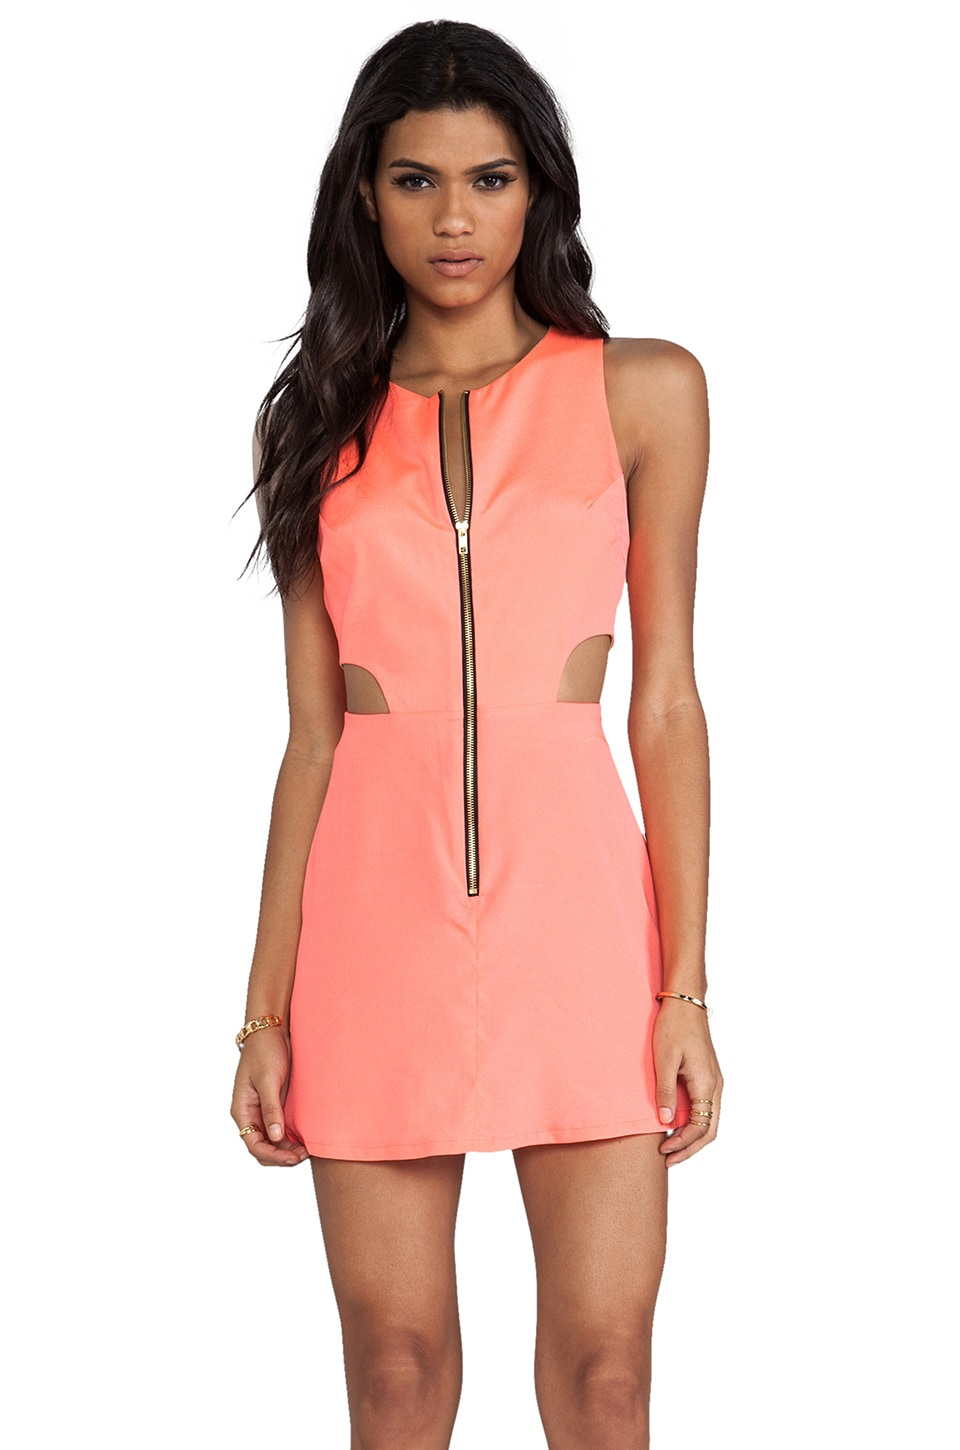 Naven Retro EXCLUSIVE Cutout Dress in Neon Coral